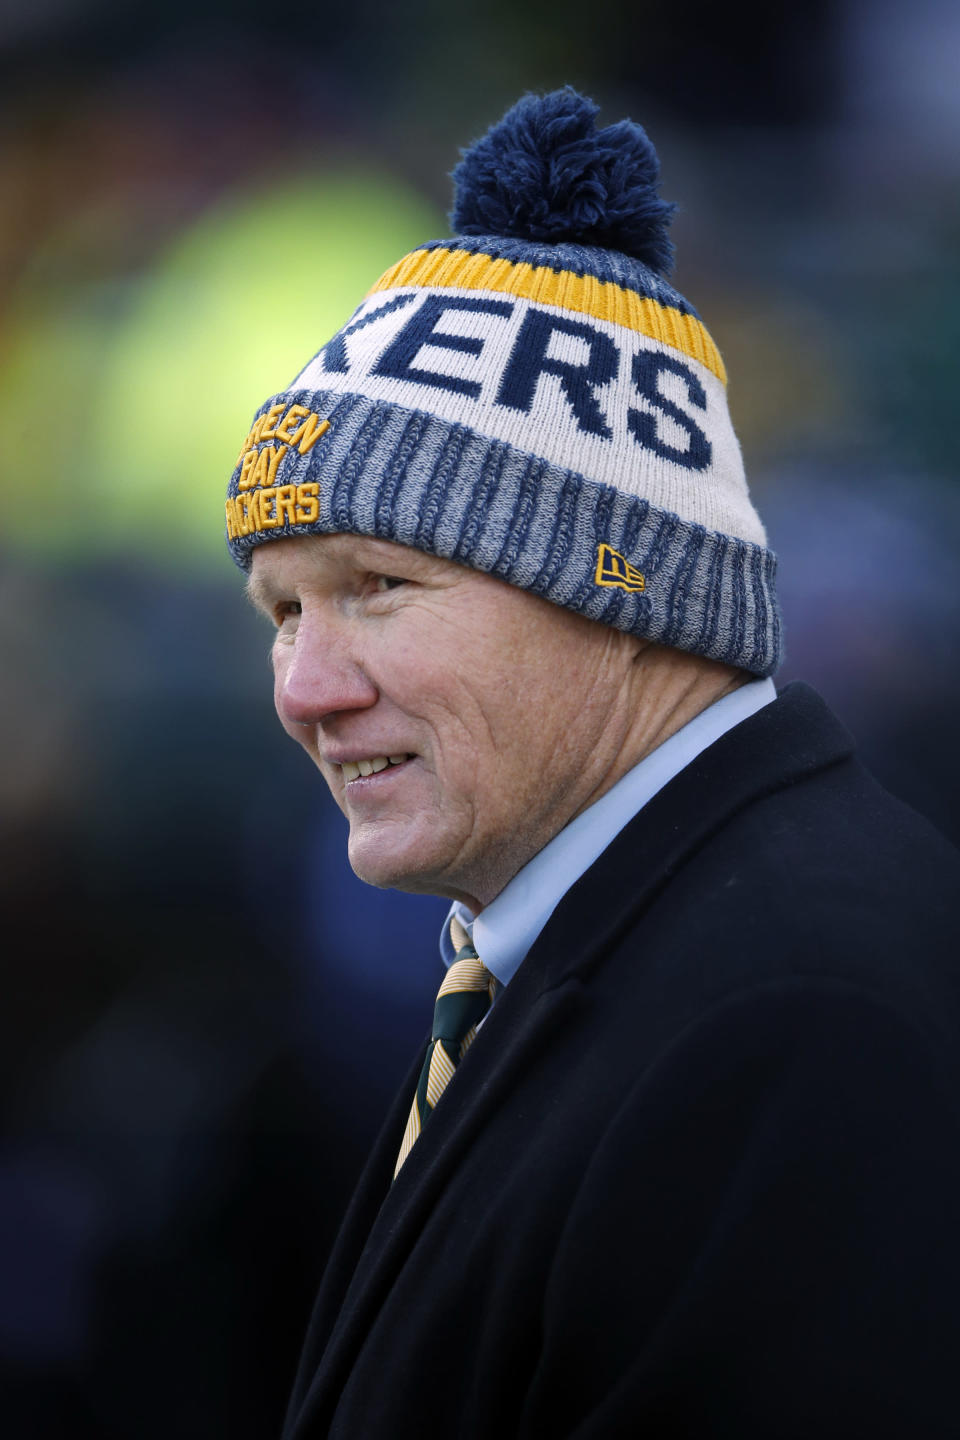 FILE - In this Dec. 15, 2019, file photo, Green Bay Packers president and CEO Mark Murphy walks the sideline before an NFL football game between the Chicago Bears and the Packers in Green Bay, Wis. Murphy remains hopeful quarterback Aaron Rodgers the three-time MVP will play for them this season, but says he does not know whether Rodgers will arrive for the start of training camp. (AP Photo/Jeff Haynes, File)